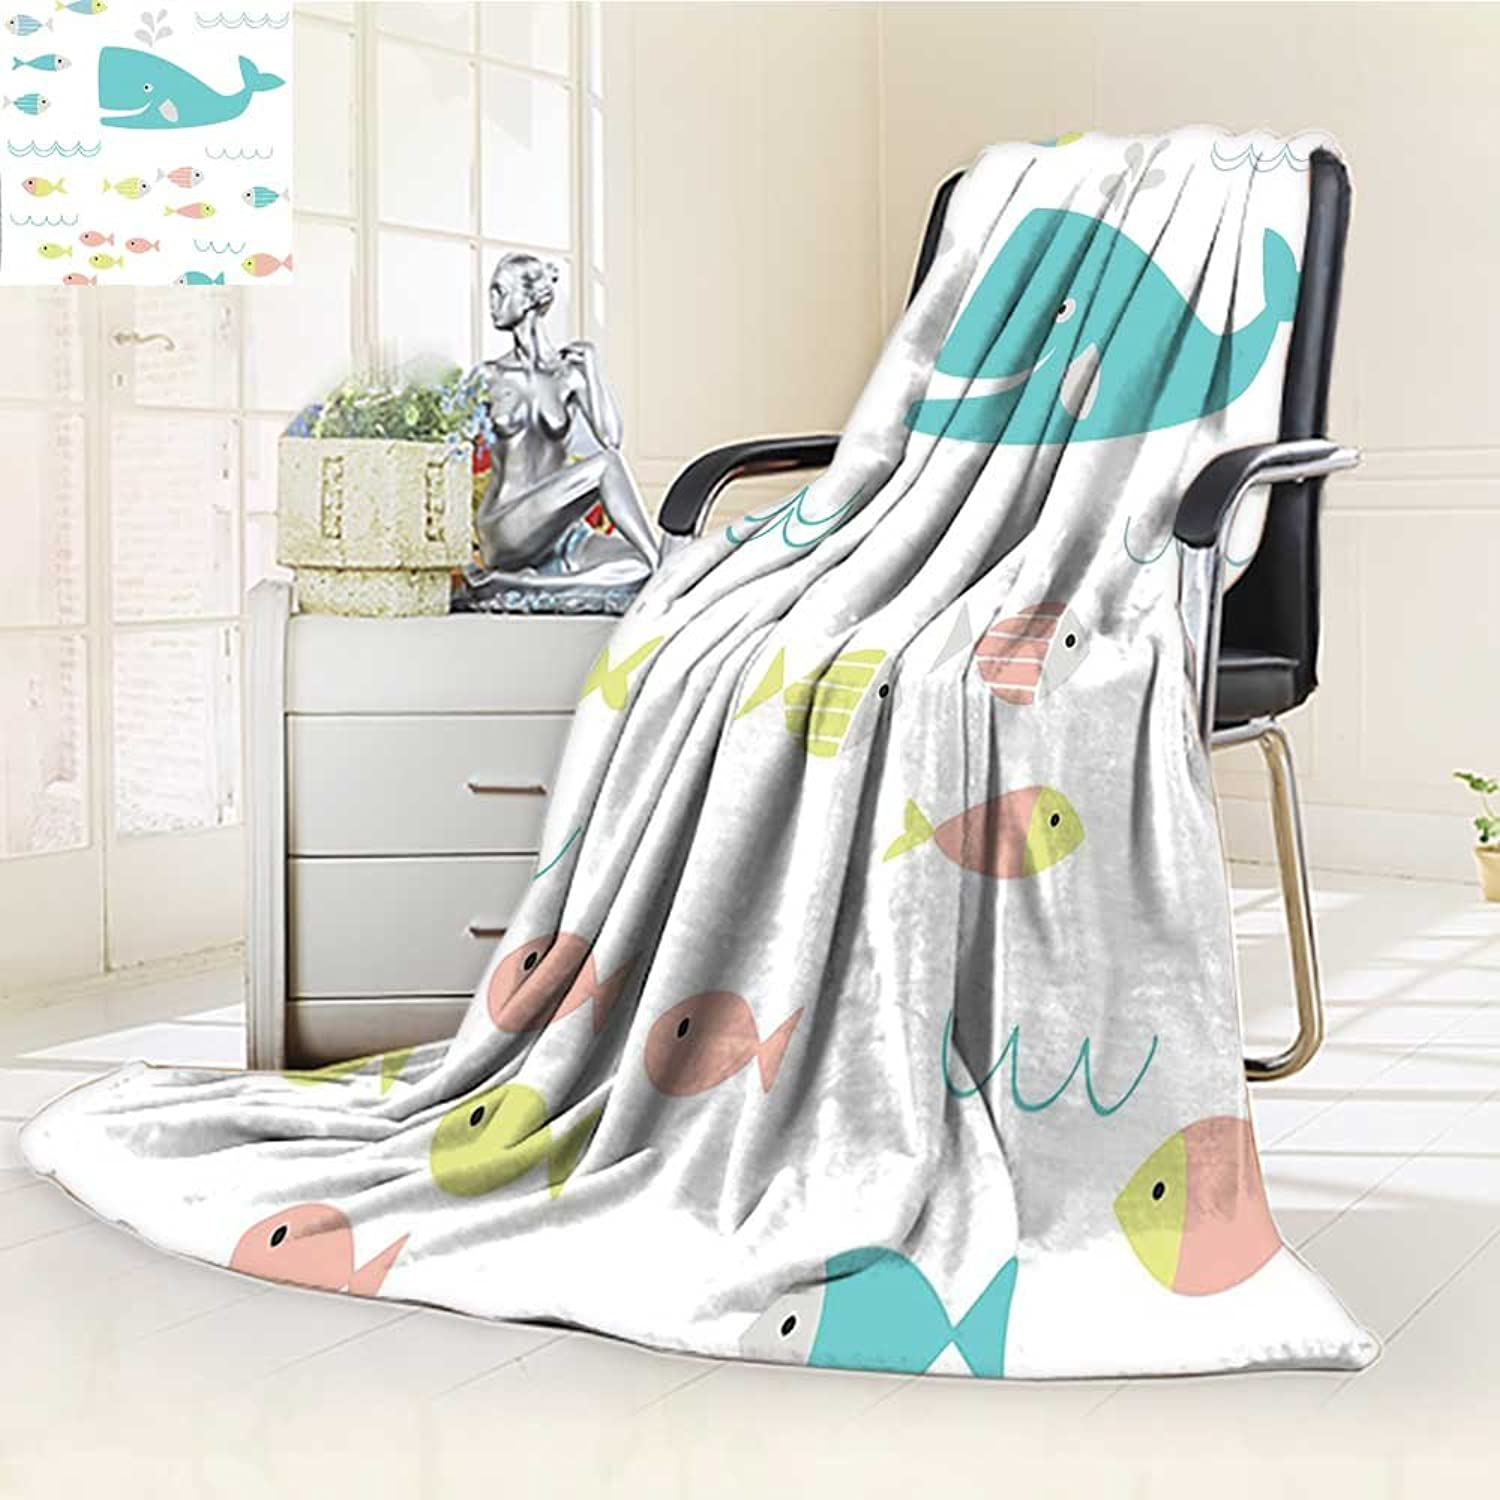 YOYI-HOME Fleece Duplex Printed Blanket 300 GSM Whale Decor Smiling Whale with Schoal of Tiny Fish Artwork bluee Yellow Pink and White Reversible Super Soft Warm Fuzzy Bed Blanket  W39.5 x H59